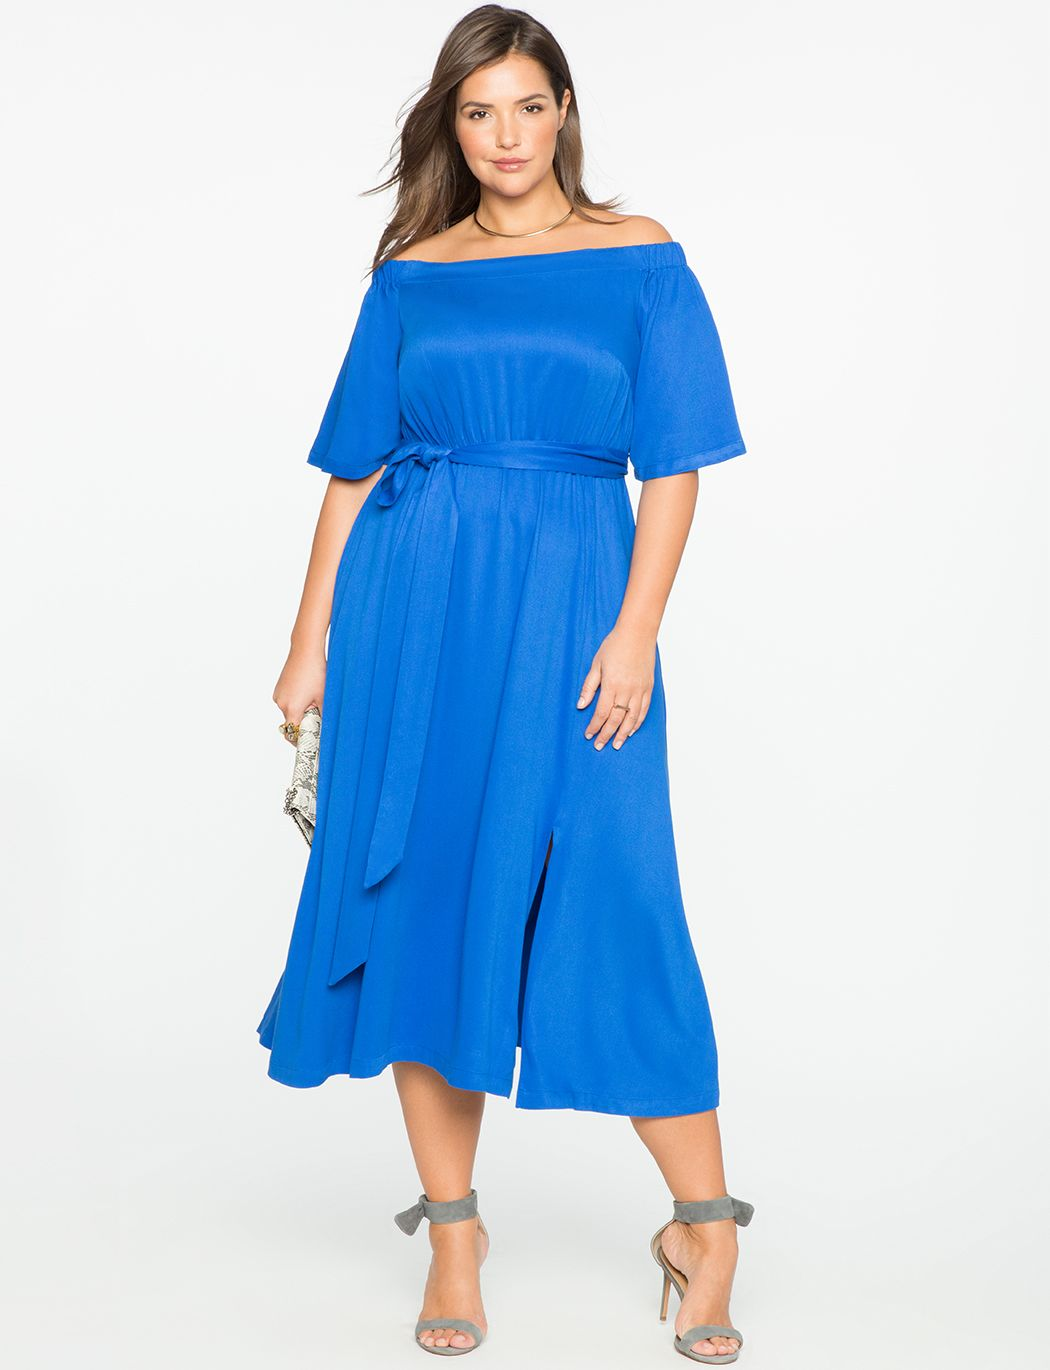 6c7ebba3db853 Off the Shoulder Midi Dress with Wrap Skirt | Women's Plus Size Dresses |  ELOQUII